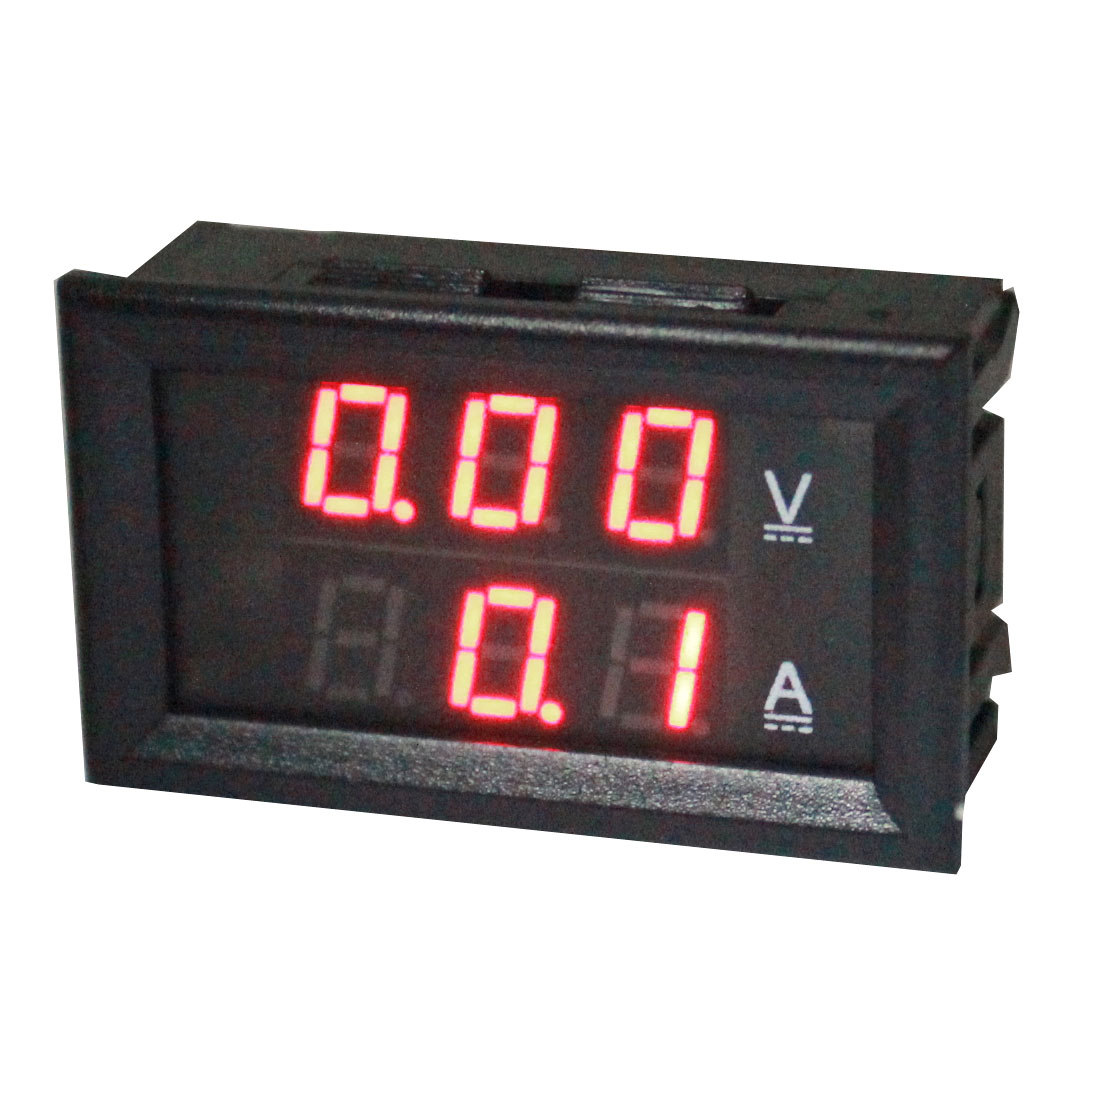 DC 0-100V 50A Wire Leads Panel Mount 7-Segment Red Digits 3-Bit LED Digital Display Ammeter Voltmeter Volt Ampere Meter